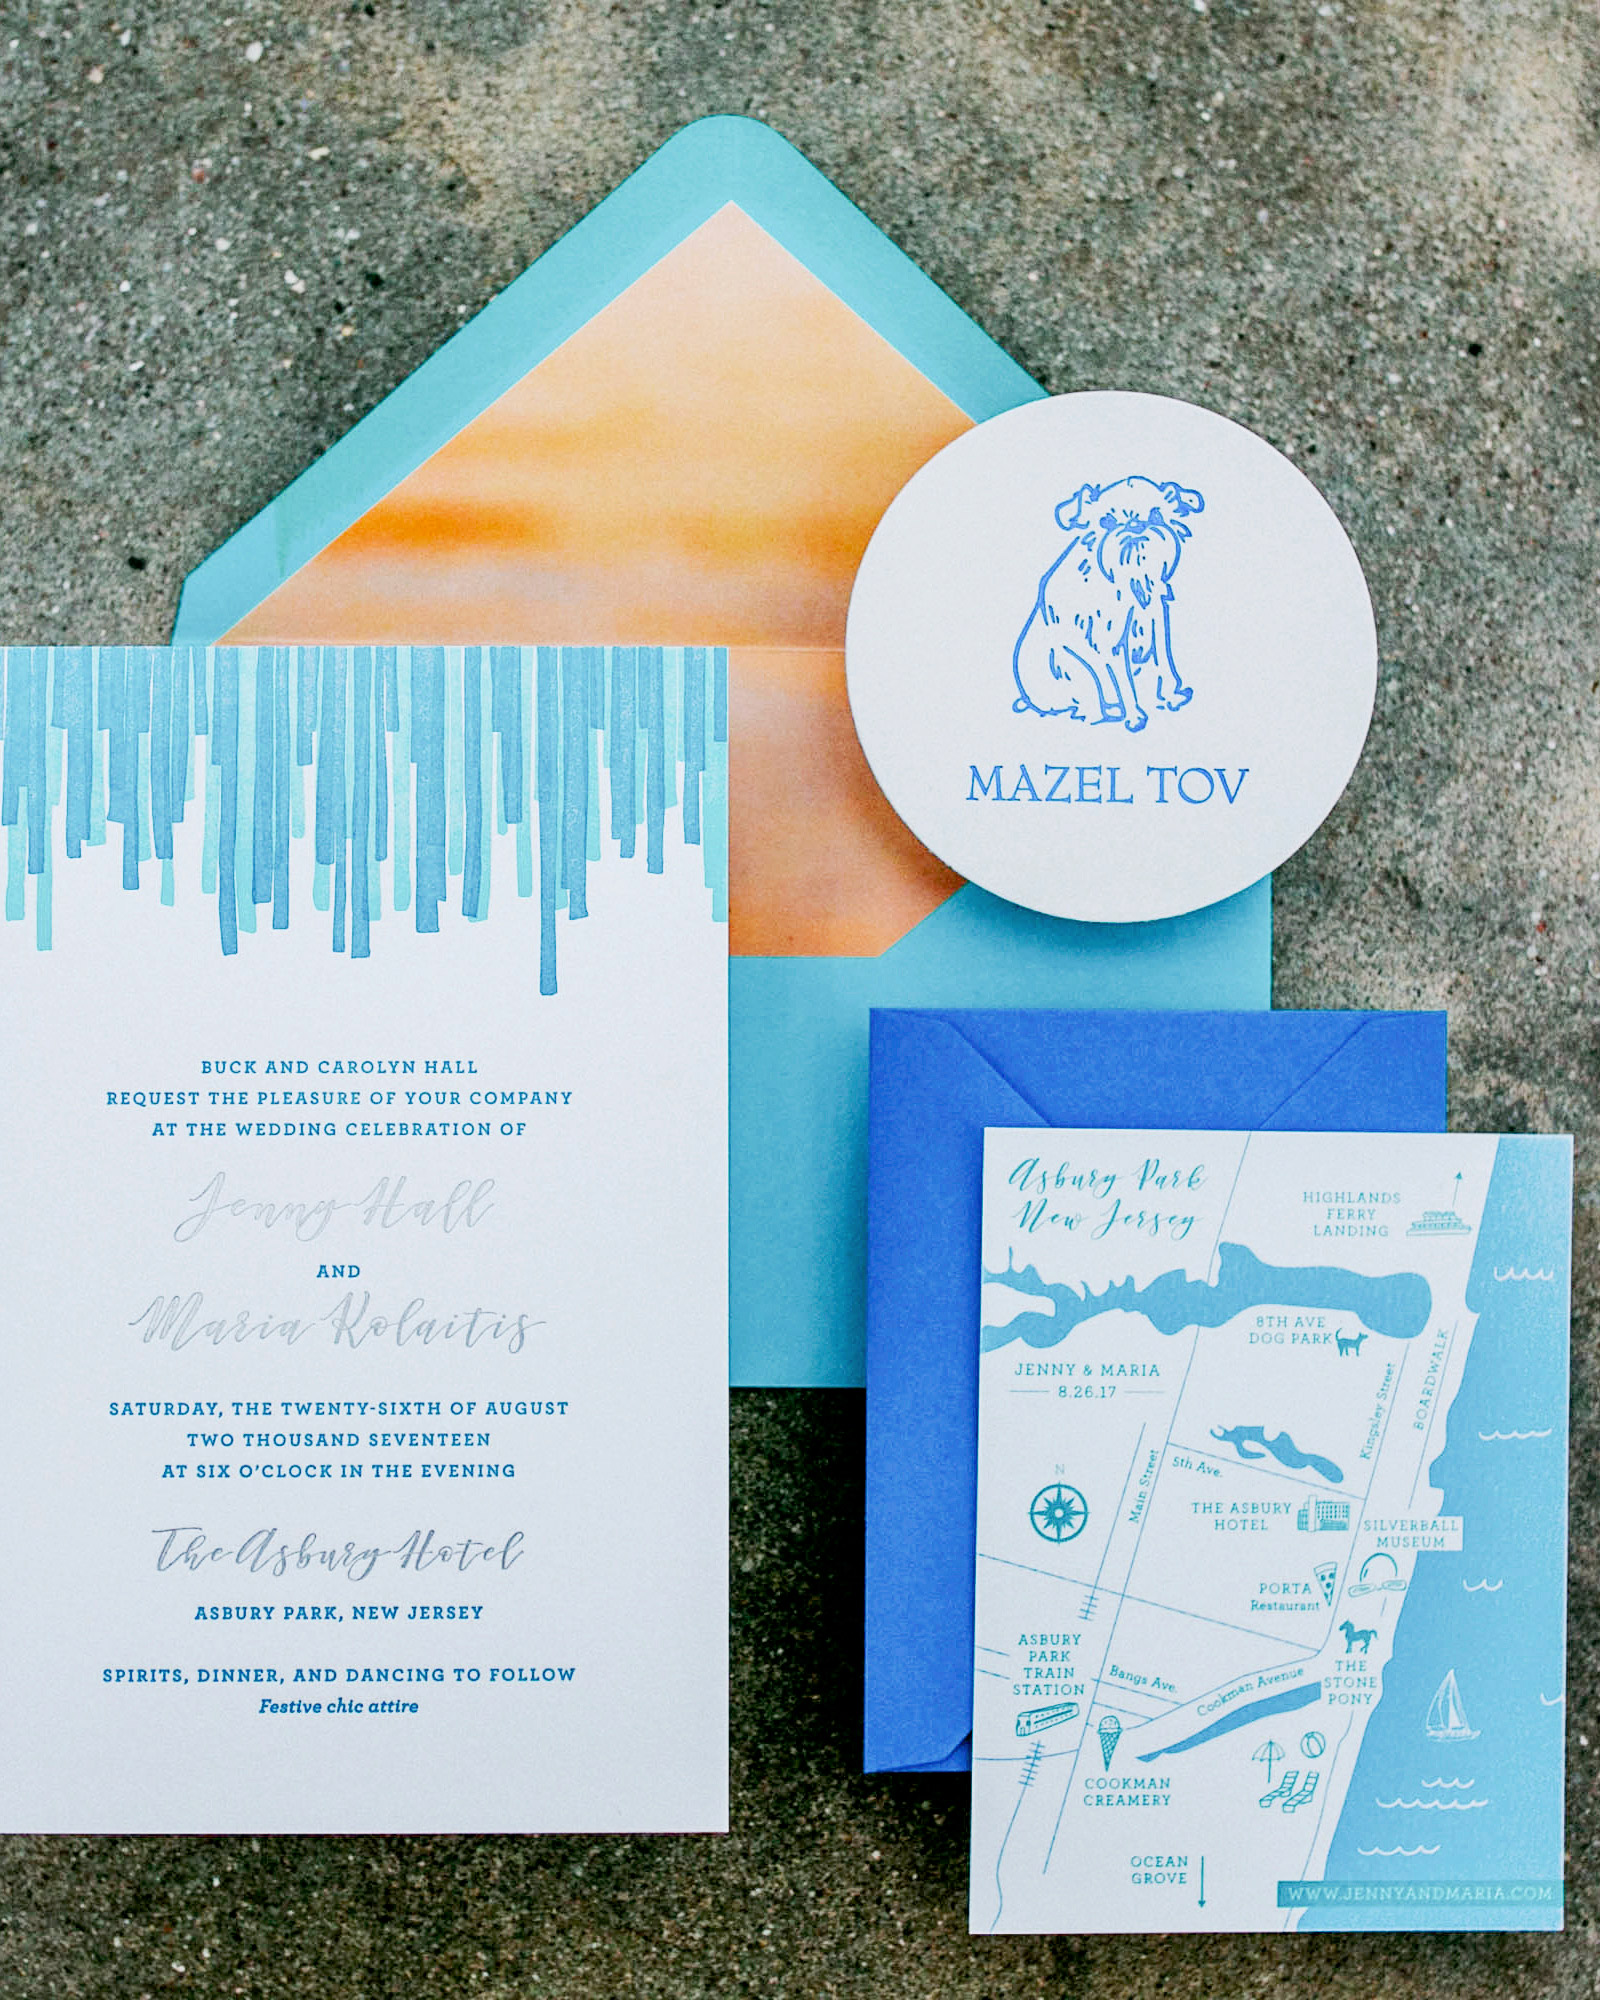 Fourteen-Forty designed the custom invitation suite, which was part modern, part beachy. The invite was a play off the multi-colored streamer installation by The Color Condition that would hang in the center of the reception room. And the brides' pup Rita, made an appearance on the response card, as well as coasters (shown here).